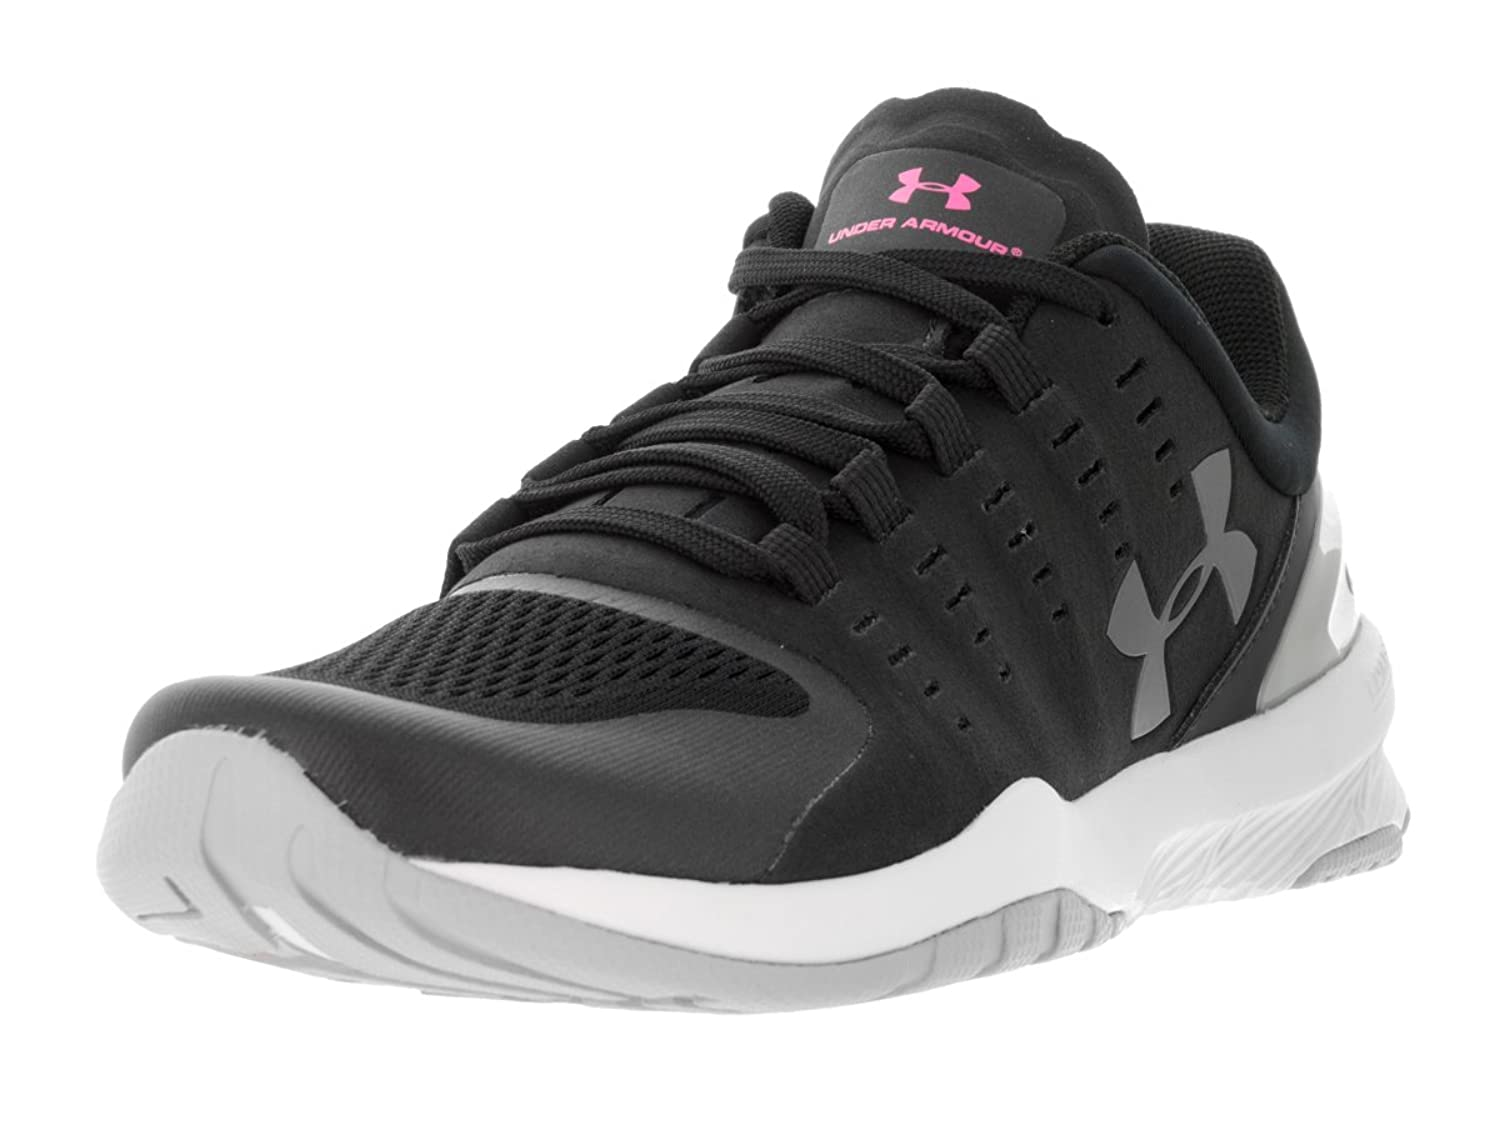 Under Armour Charged Stunner Stunner Charged Mujer Zapatillas para Correr SS1640 e5ab3a